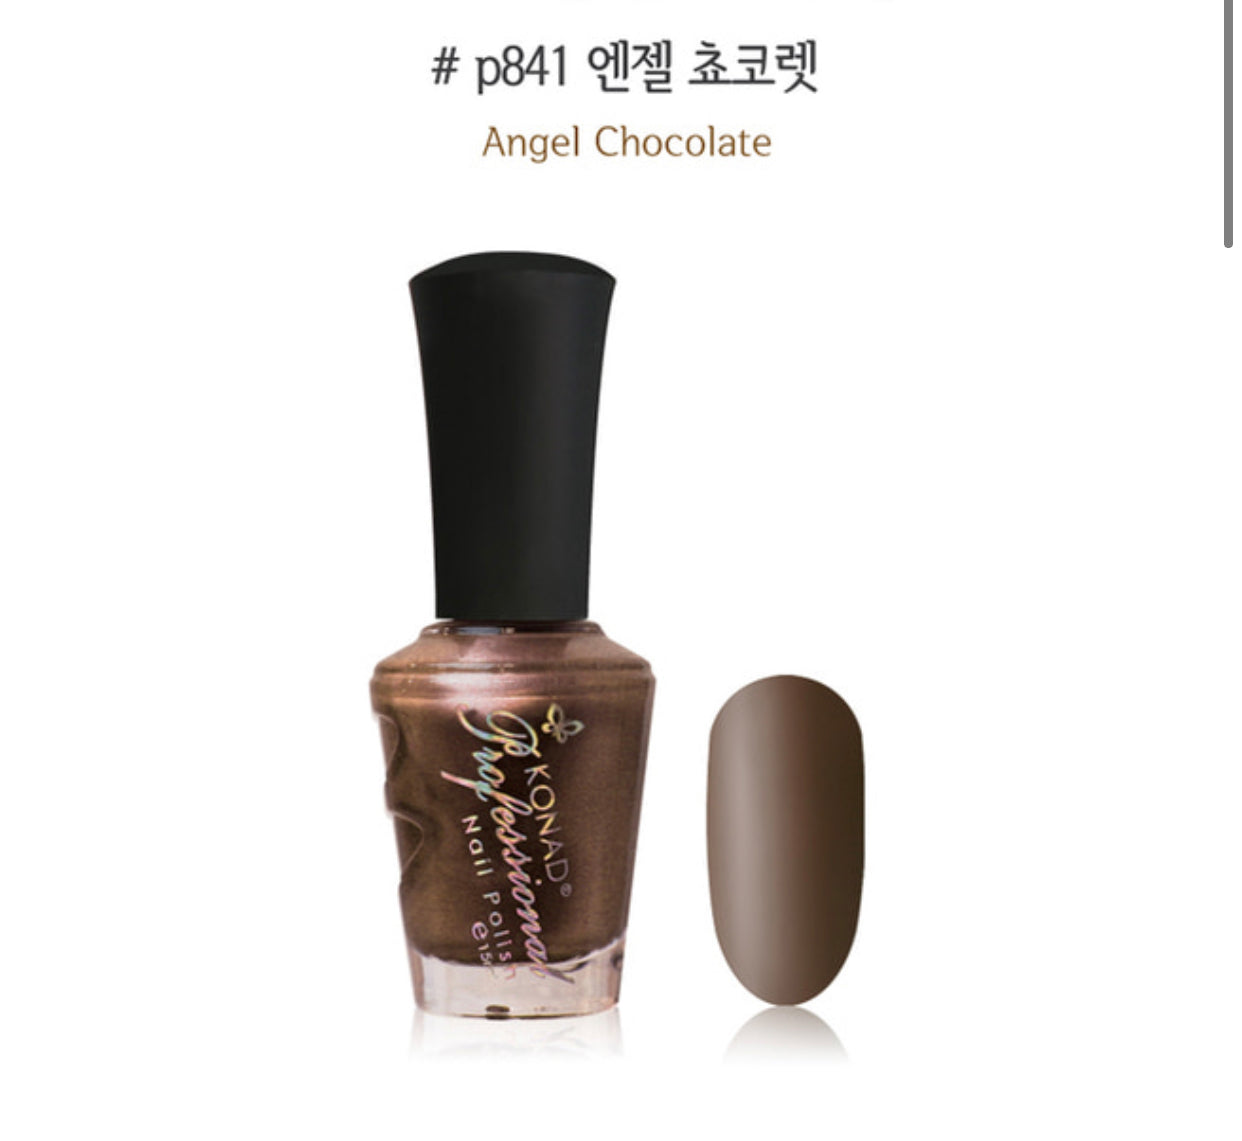 Professional Nail Polish - P841 Angel Chocolate